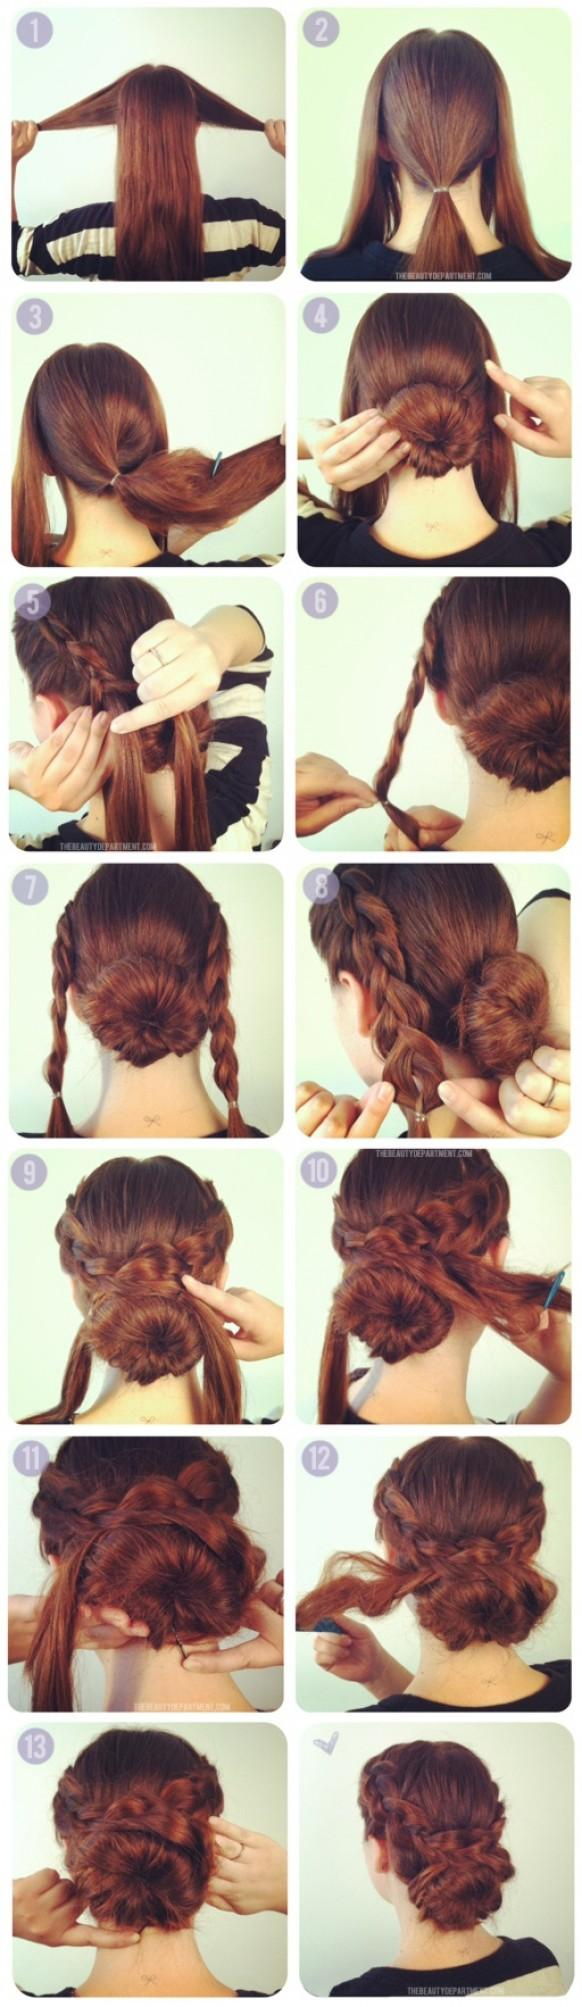 Coiffures De Mariage Cheveux 1123609 Hair Styles Long Hair Styles Cool Hairstyles